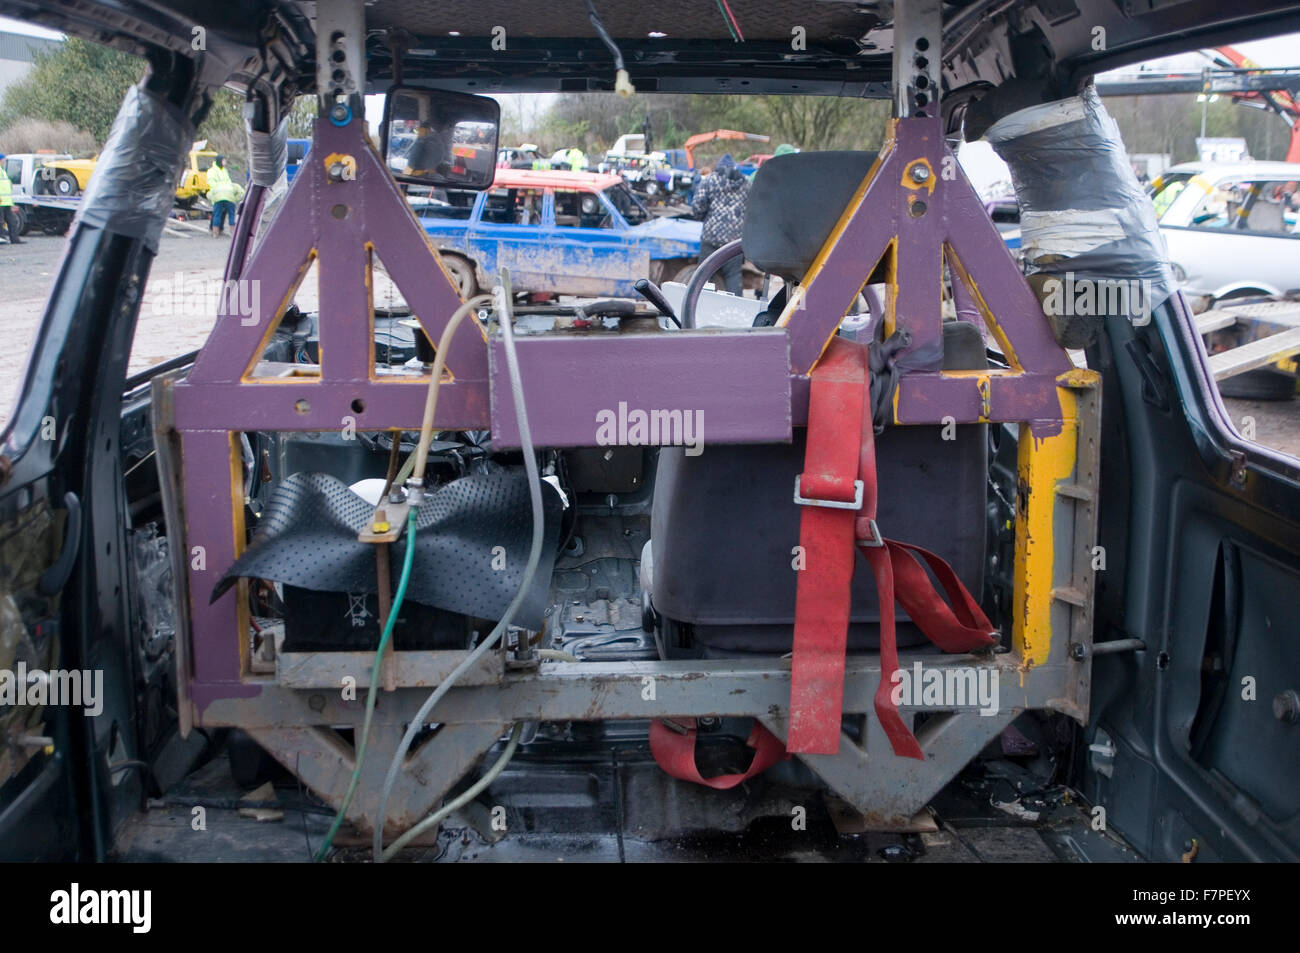 stock photo roll cage rollcage cages rollcages h frame in a banger racing car cars stock demolition derby derbies destruction race races mot